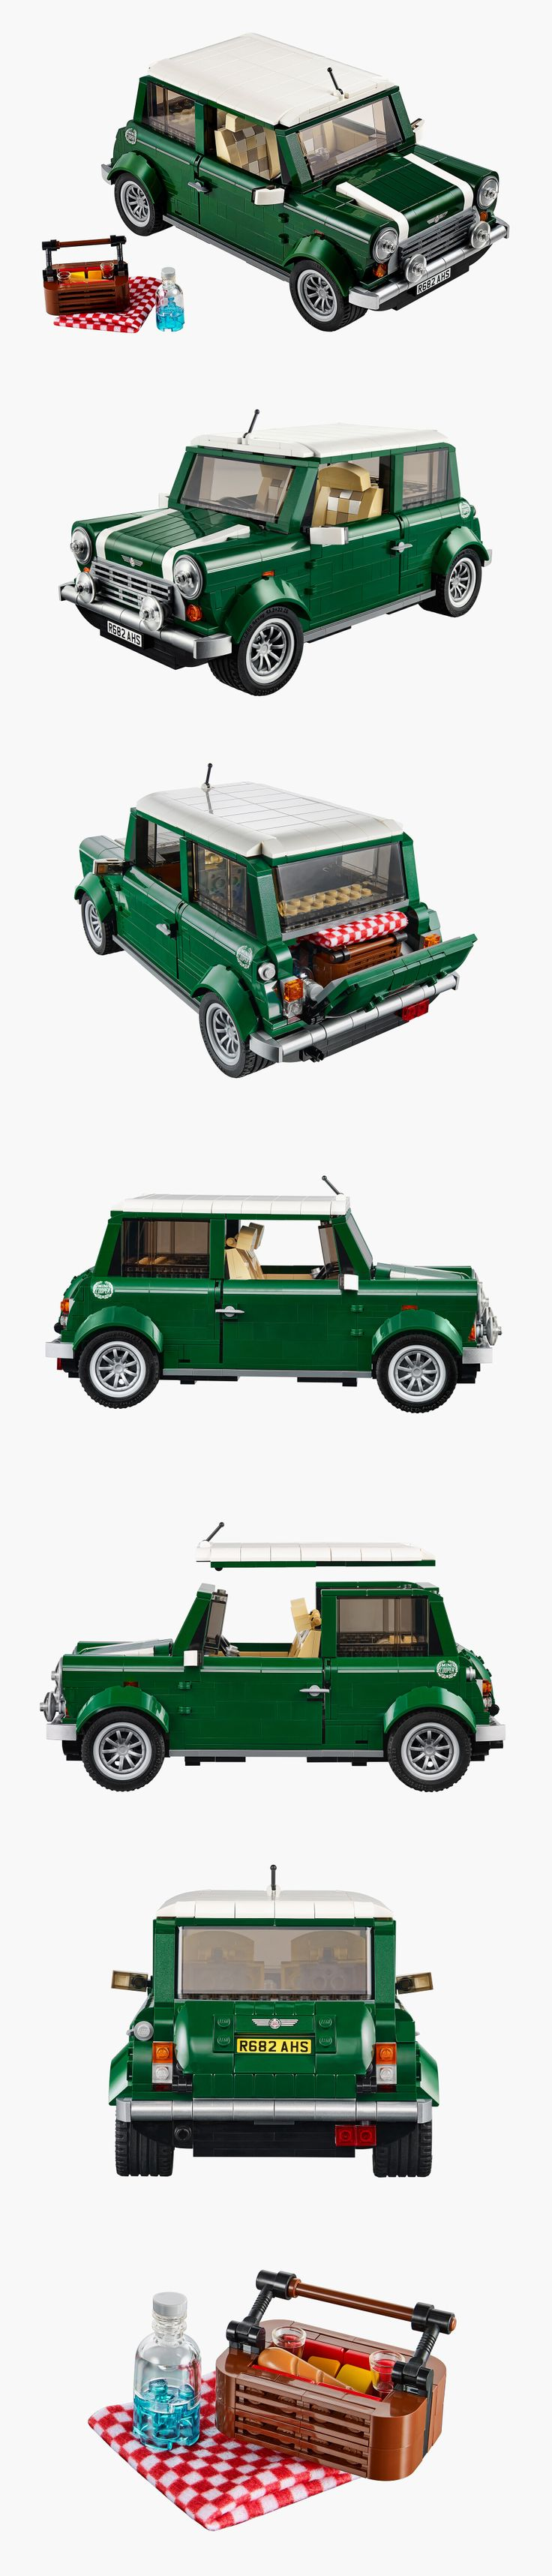 17 best ideas about lego auto on pinterest lego building. Black Bedroom Furniture Sets. Home Design Ideas